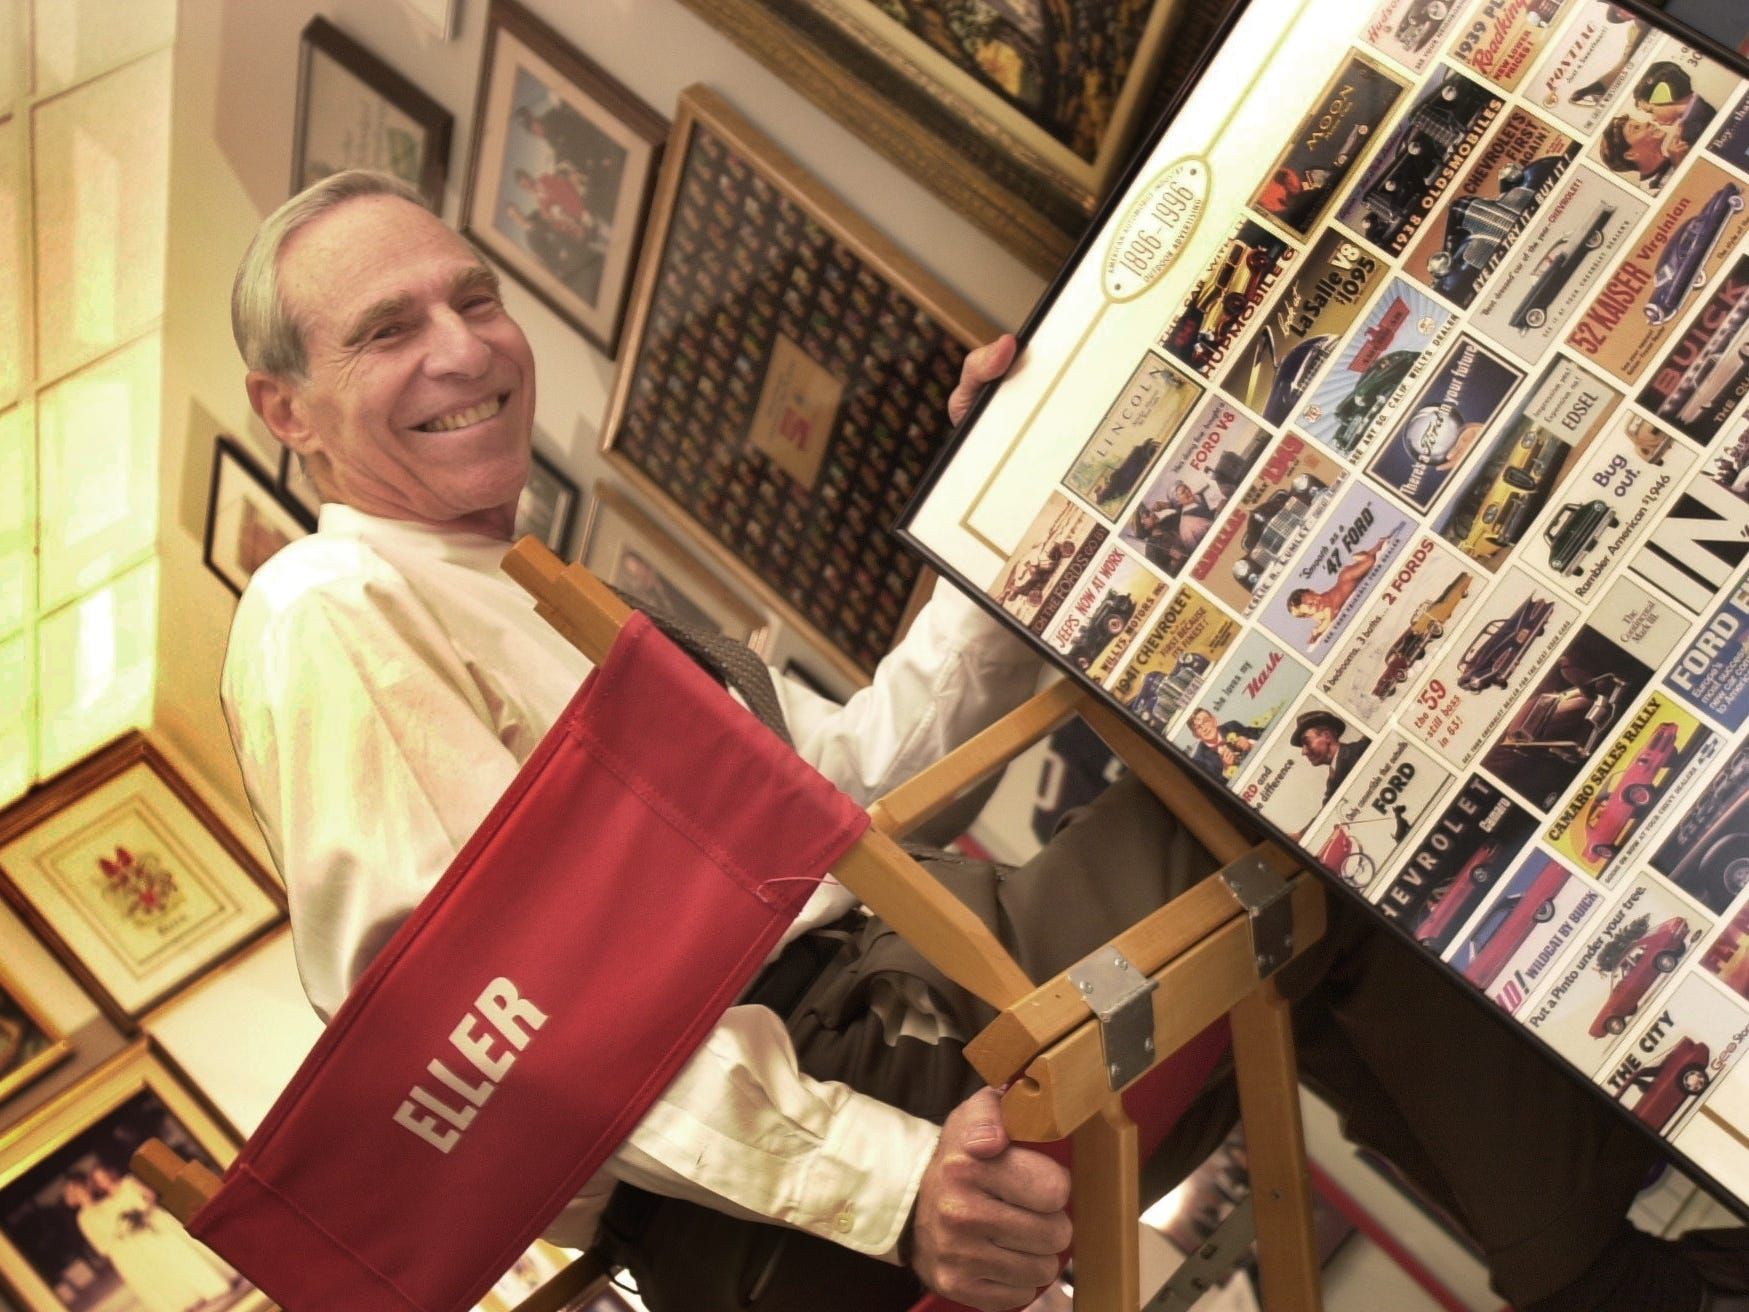 Karl Eller in his office with memorabilia of his long career and association with the University of Arizona in September 2000.